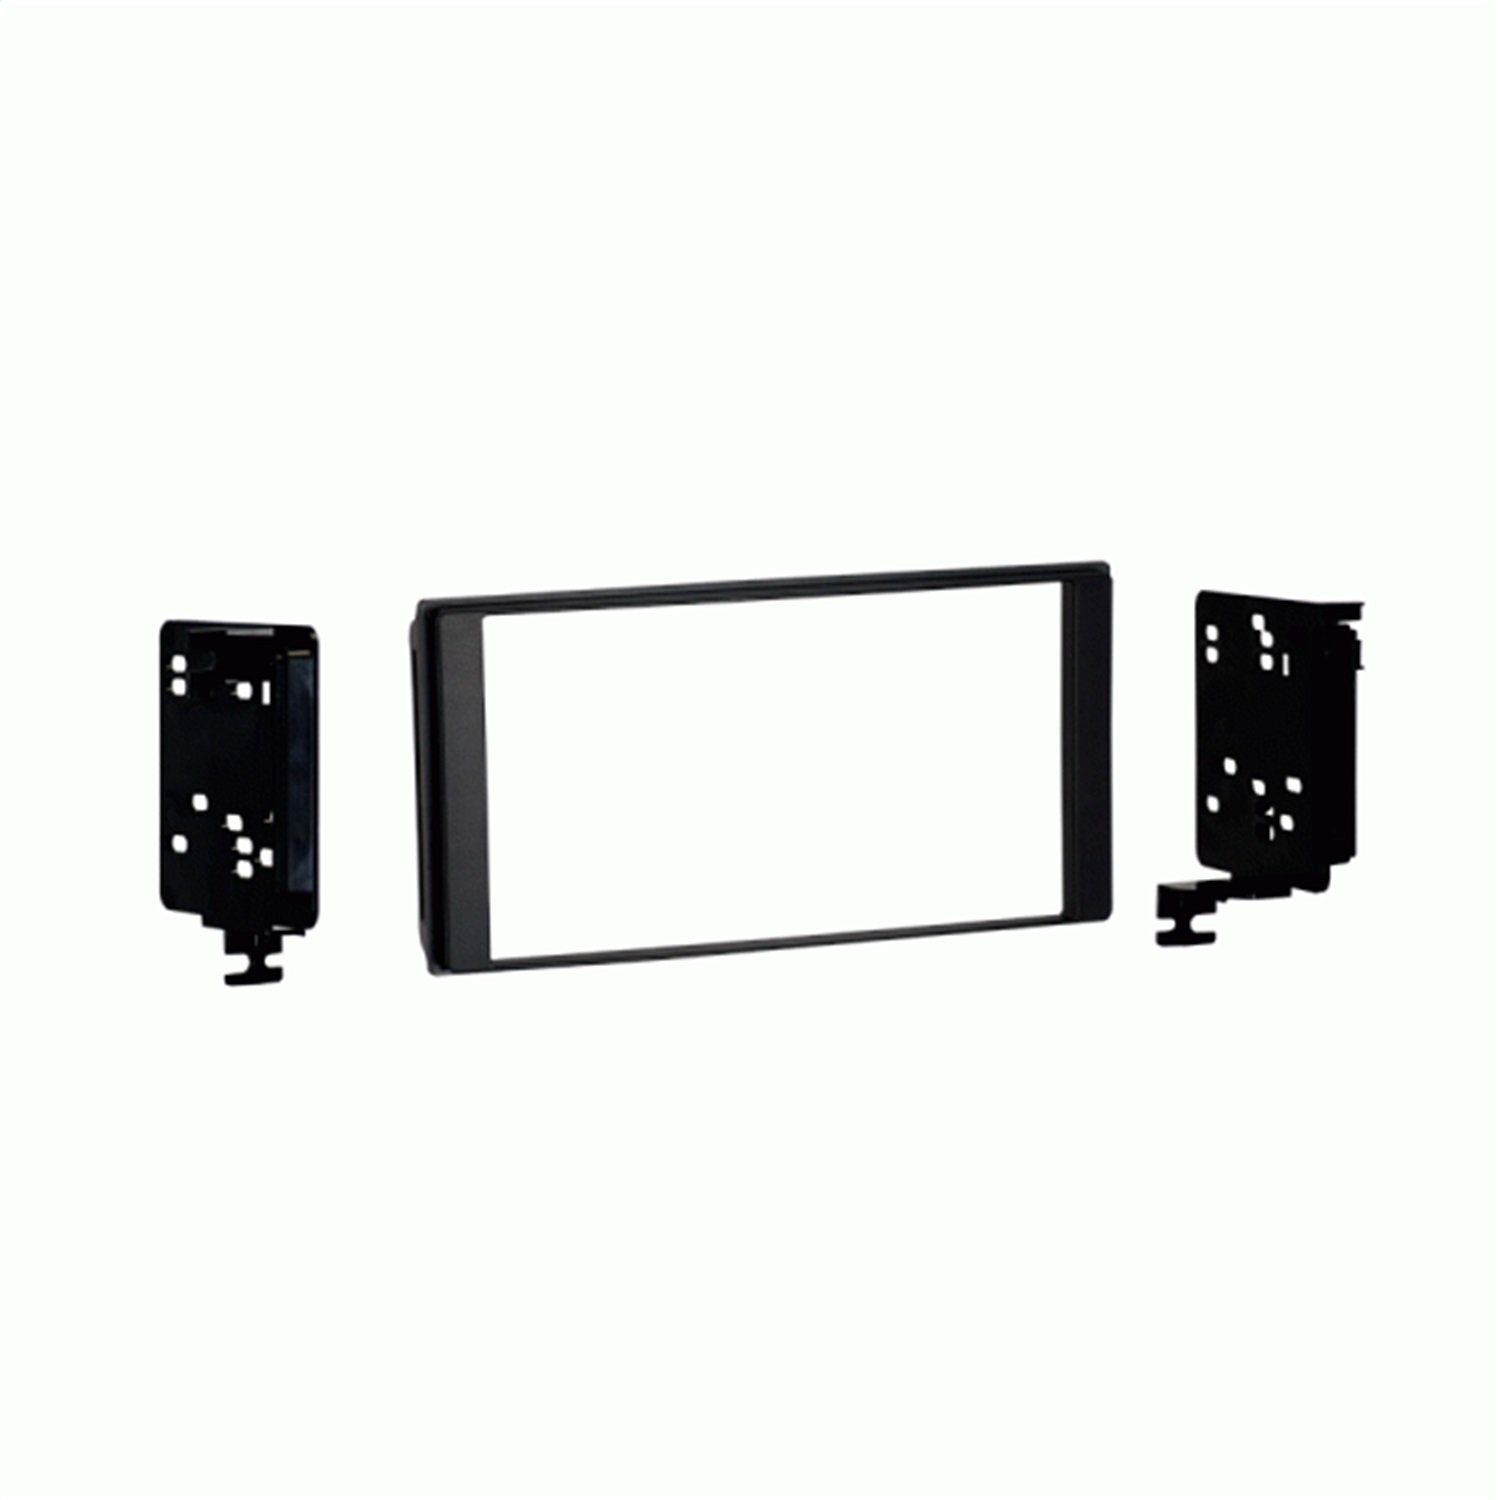 Metra 95-8905B Double DIN Dash Installation Kit for Select 2012-Up Subaru Impreza Vehicles (Black)